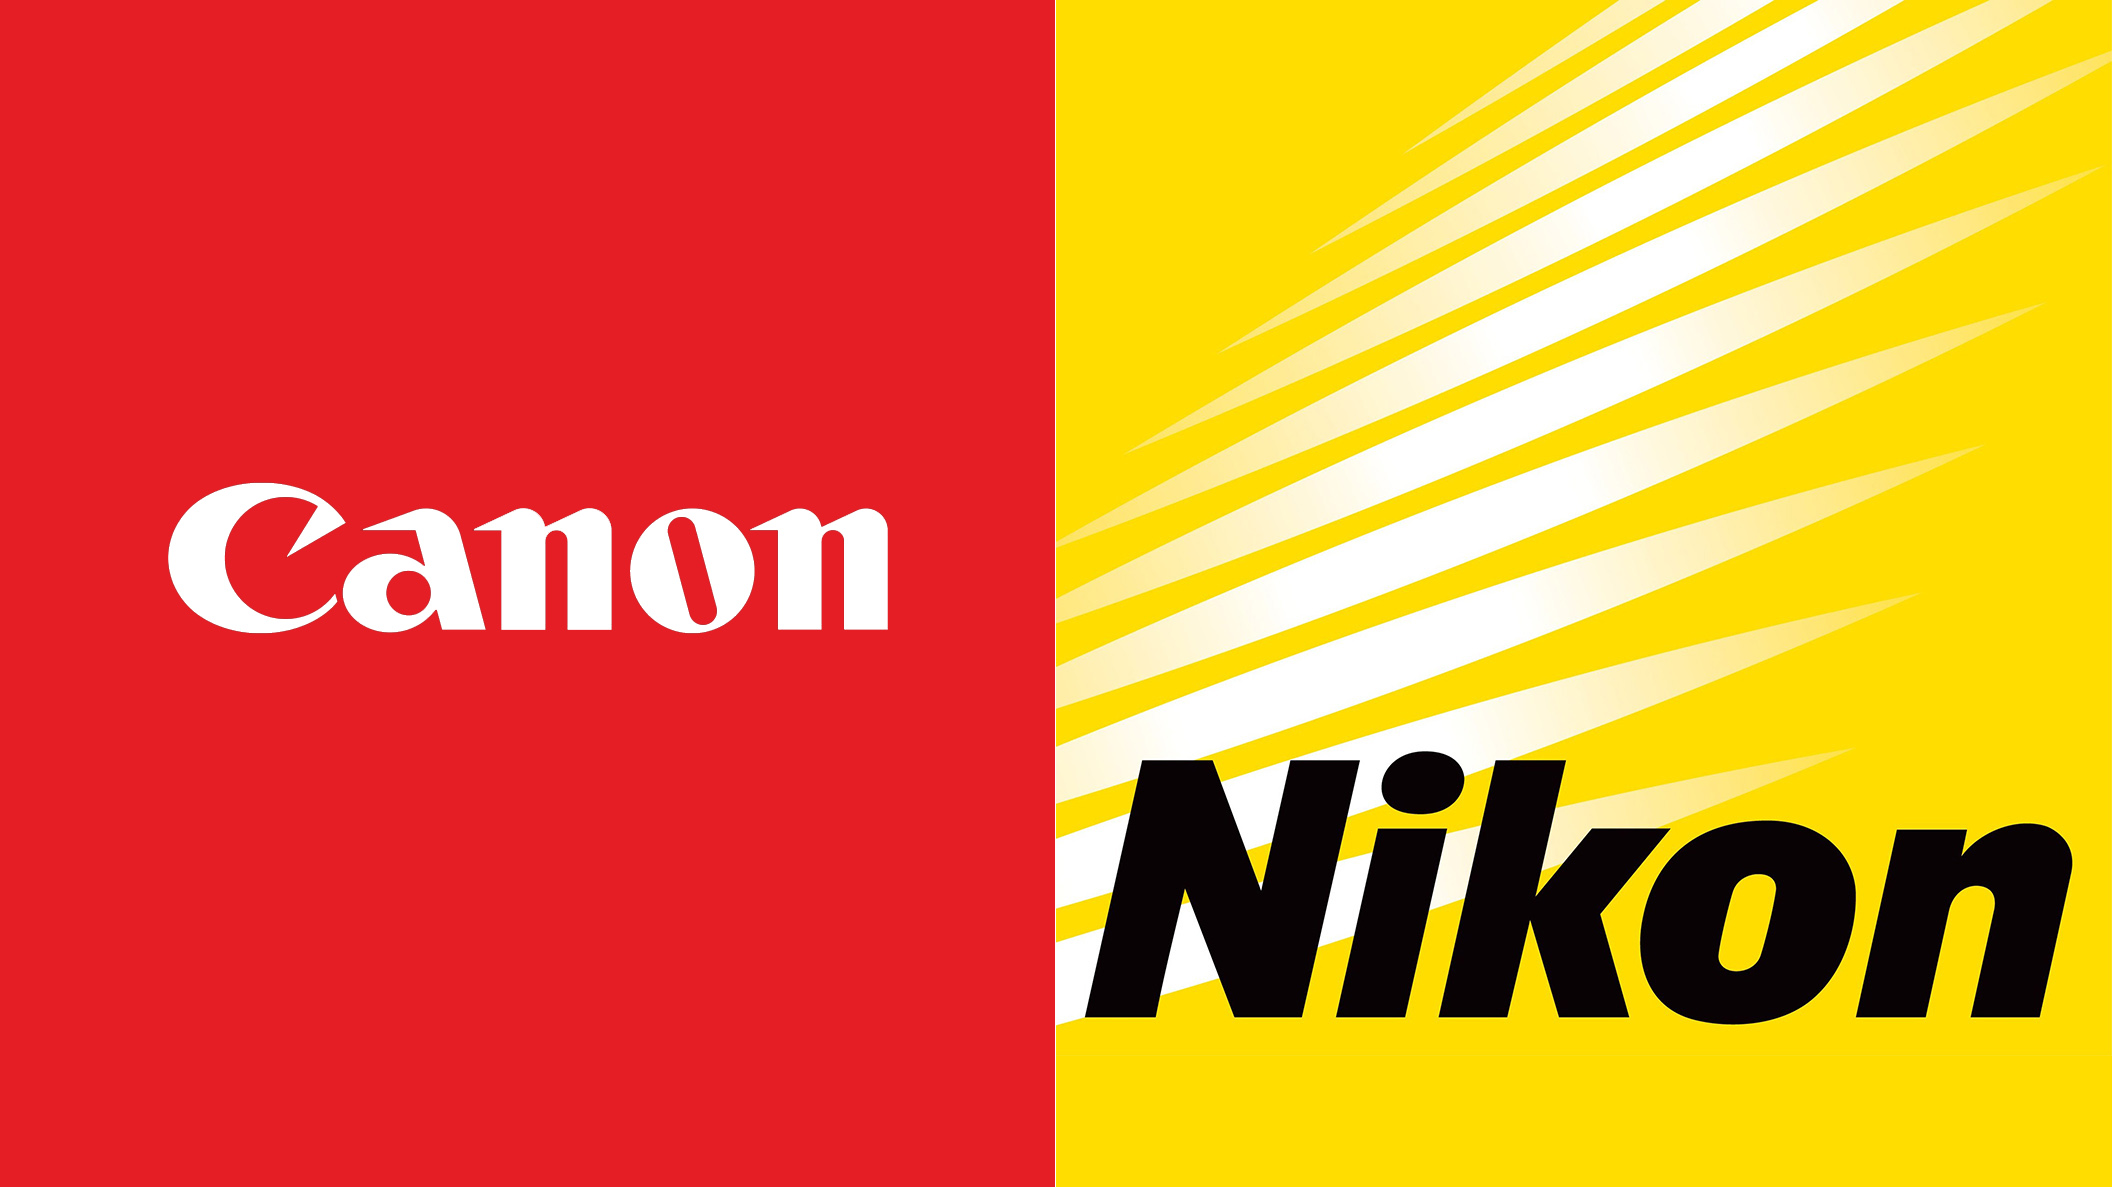 Canon vs Nikon: which DSLR should you buy?